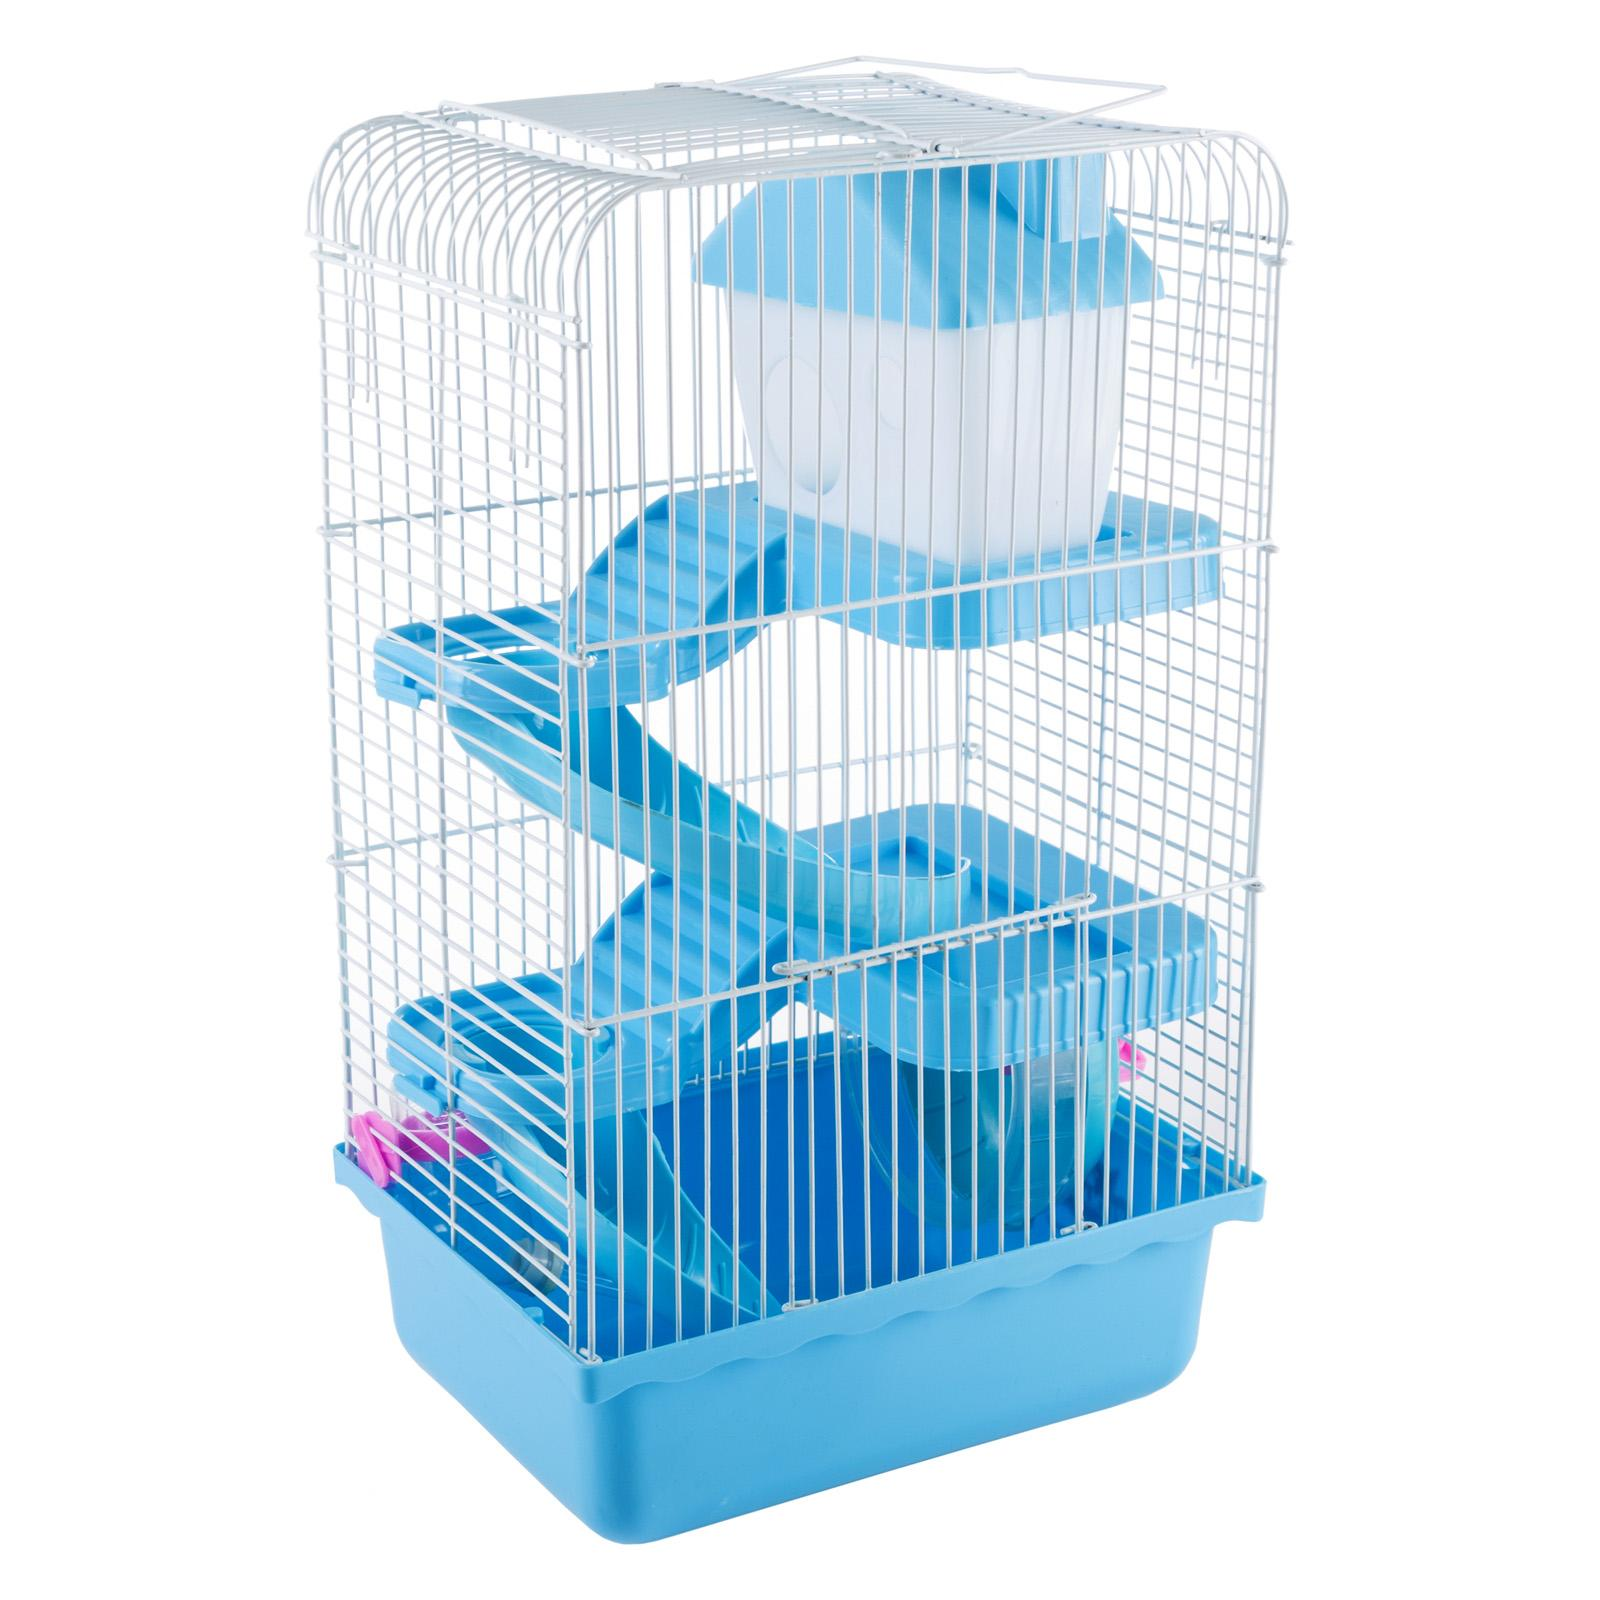 Petmaker Hamster Cage Habitat with Attachments and Accessories Blue - M320259